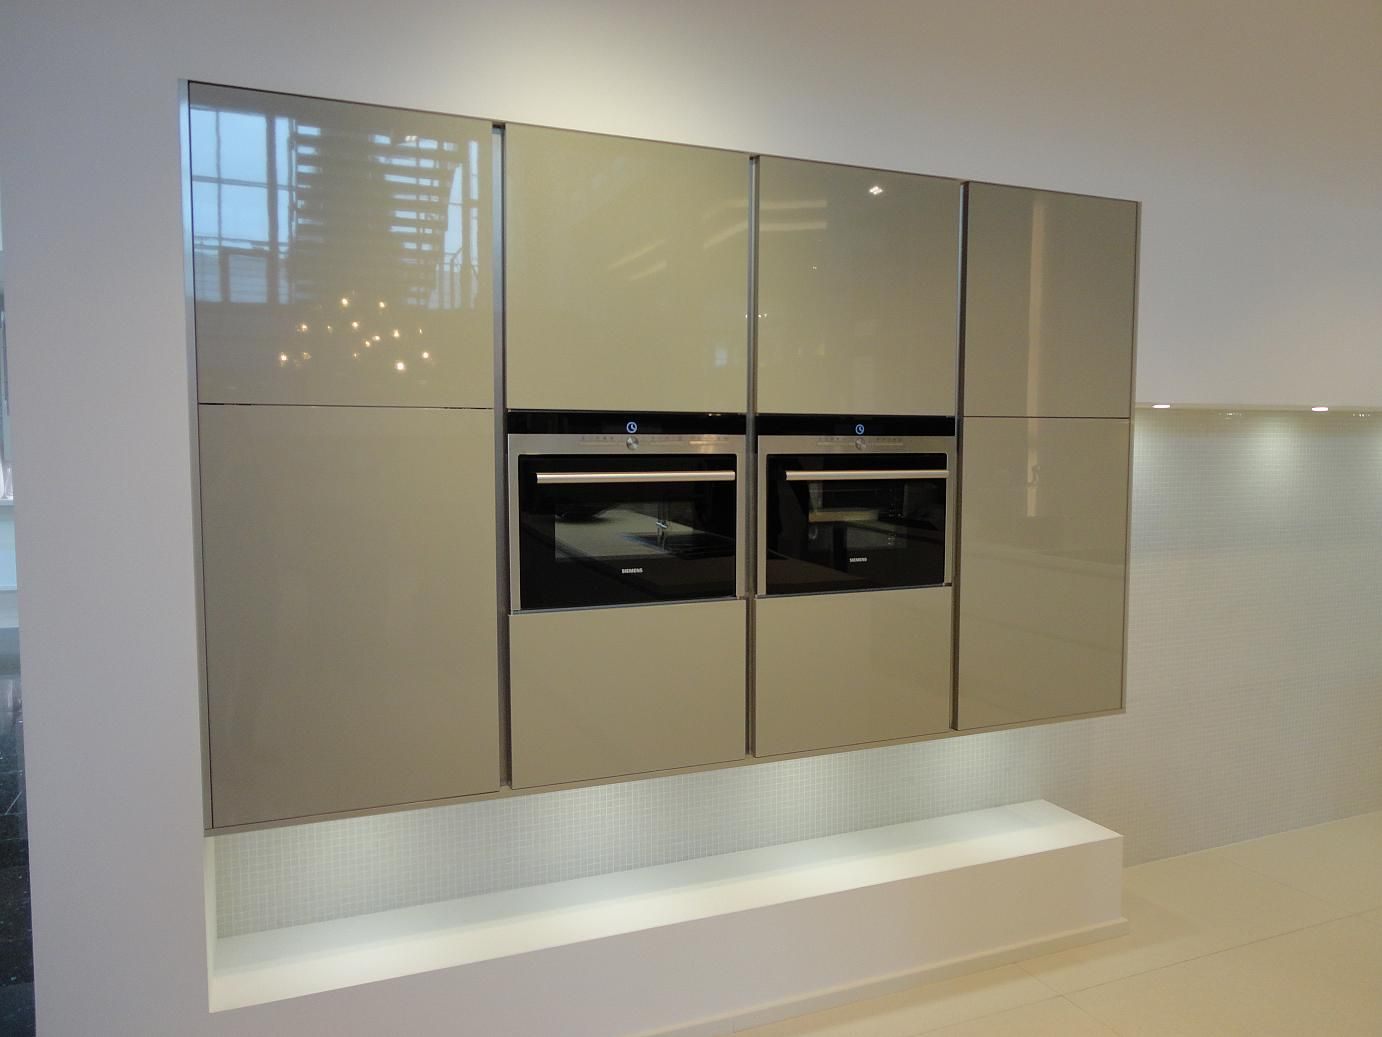 Metallic champagne handleless kitchen doors google search what sets apart a gloss acrylic lacquer and glass kitchen finish from a less costly gloss laminate and vinyl wrap kitchen finish planetlyrics Image collections